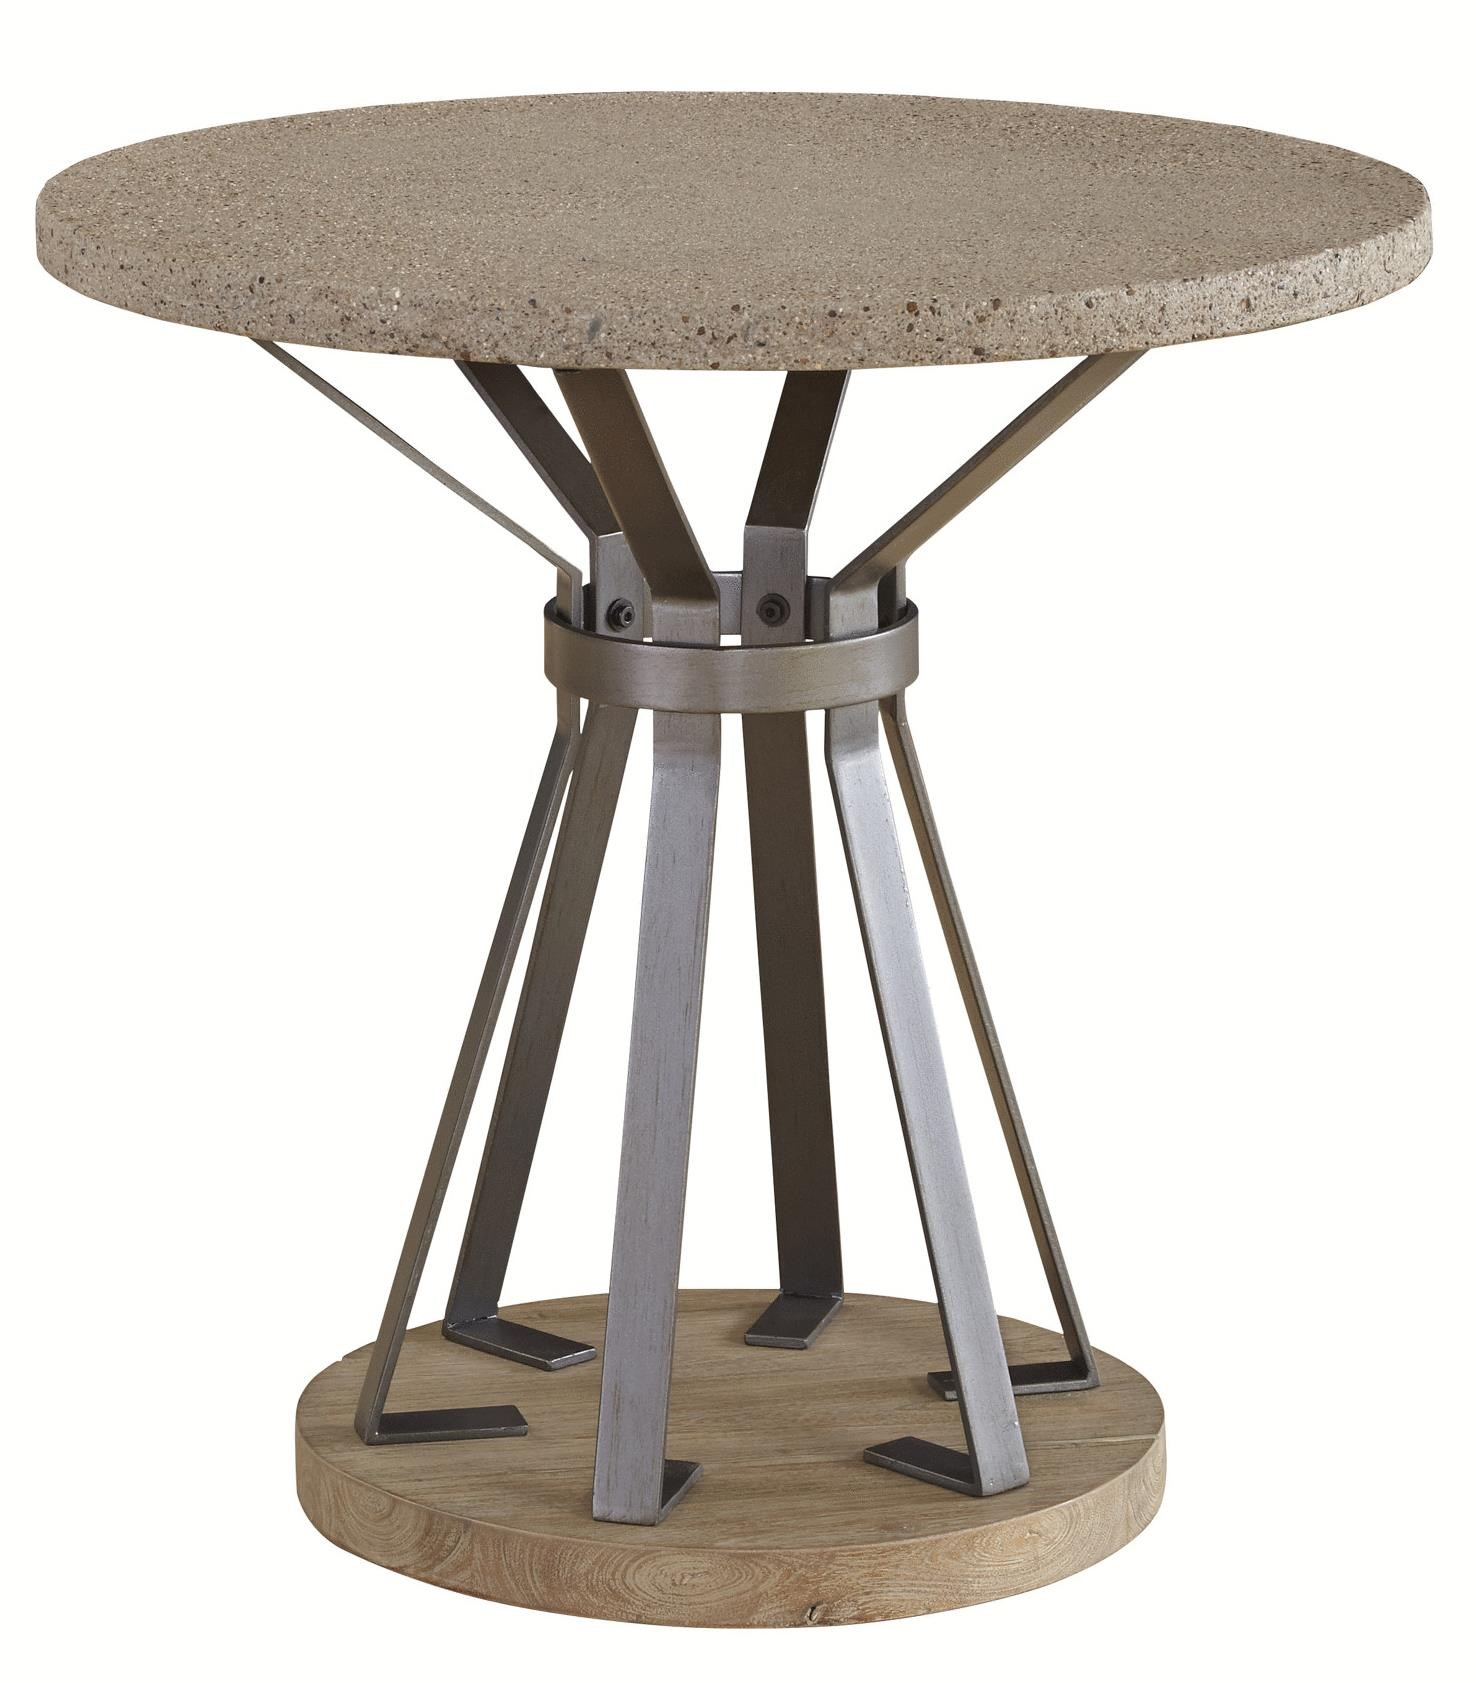 Casana Hamlin Round End Table With Concrete Top